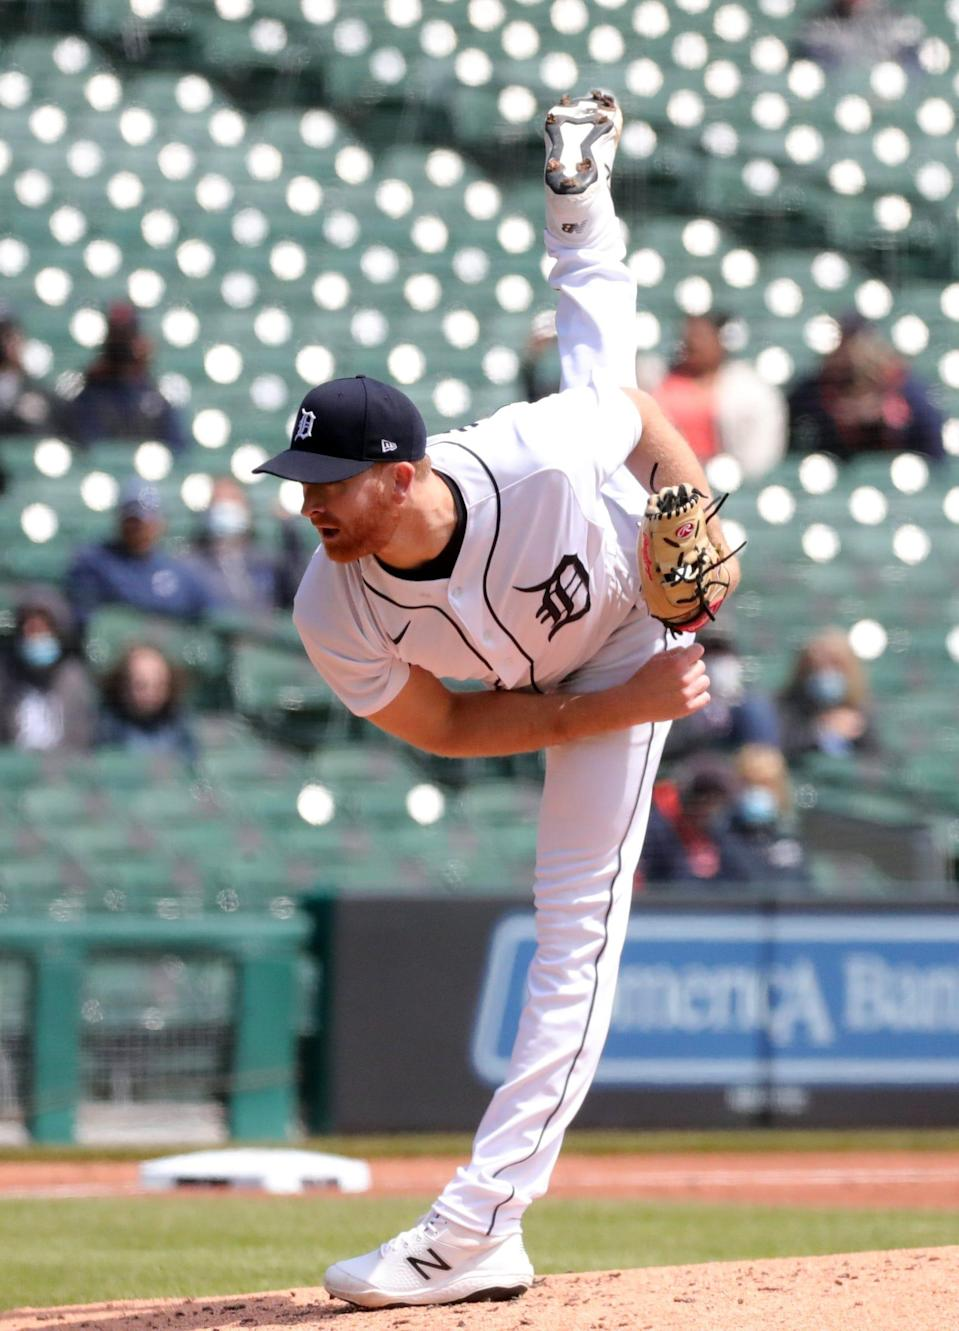 Tigers pitcher Spencer Turnbull throws against the Royals on Monday, April 26, 2021, at Comerica Park.